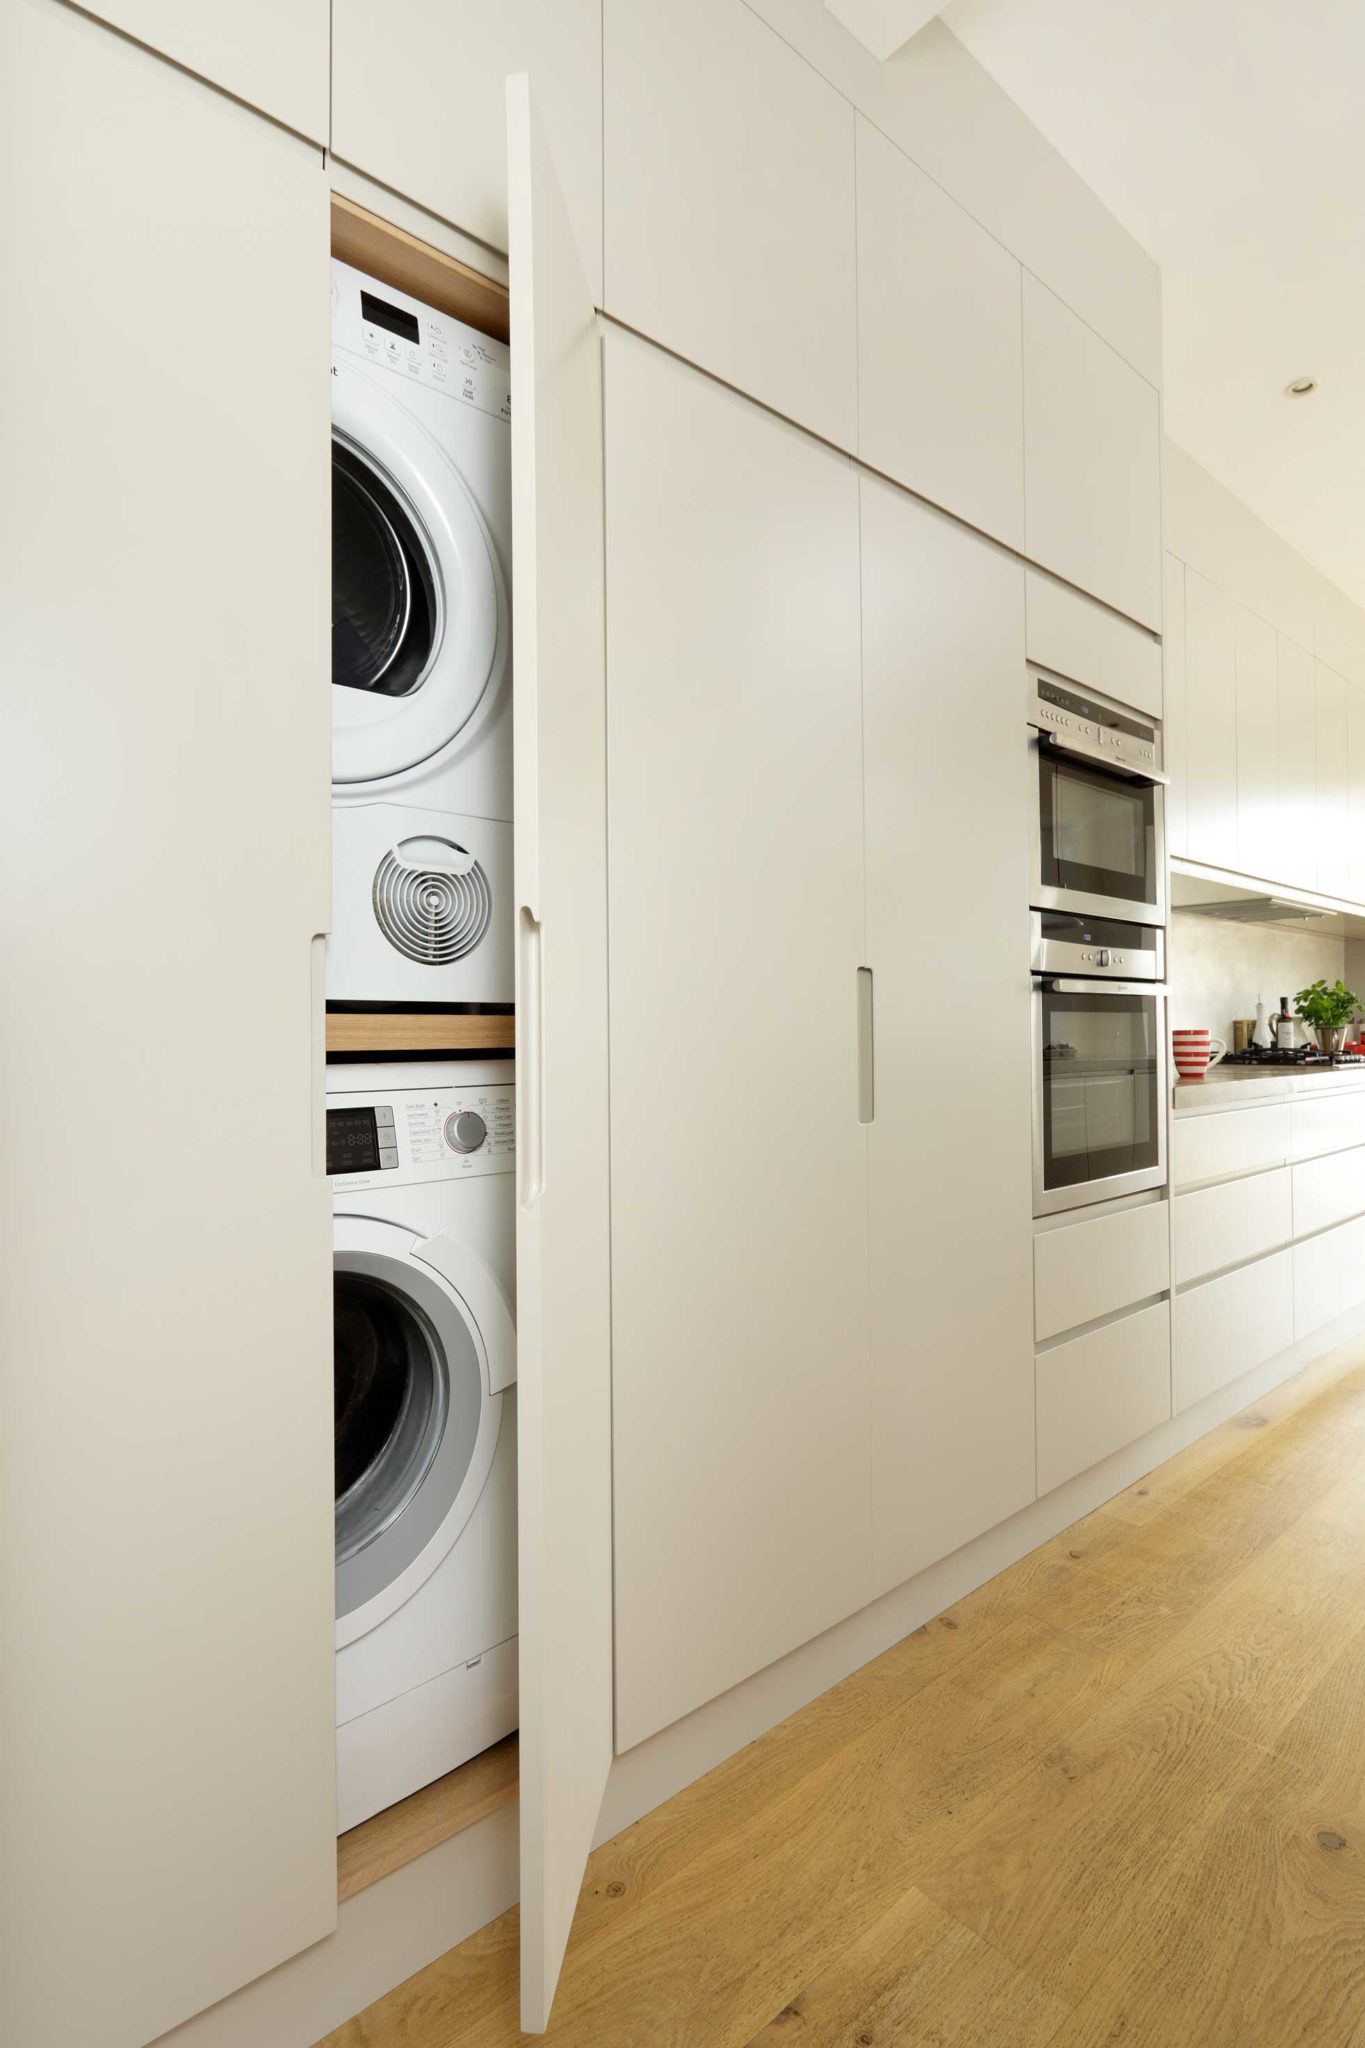 fitted units hide washer and dryer